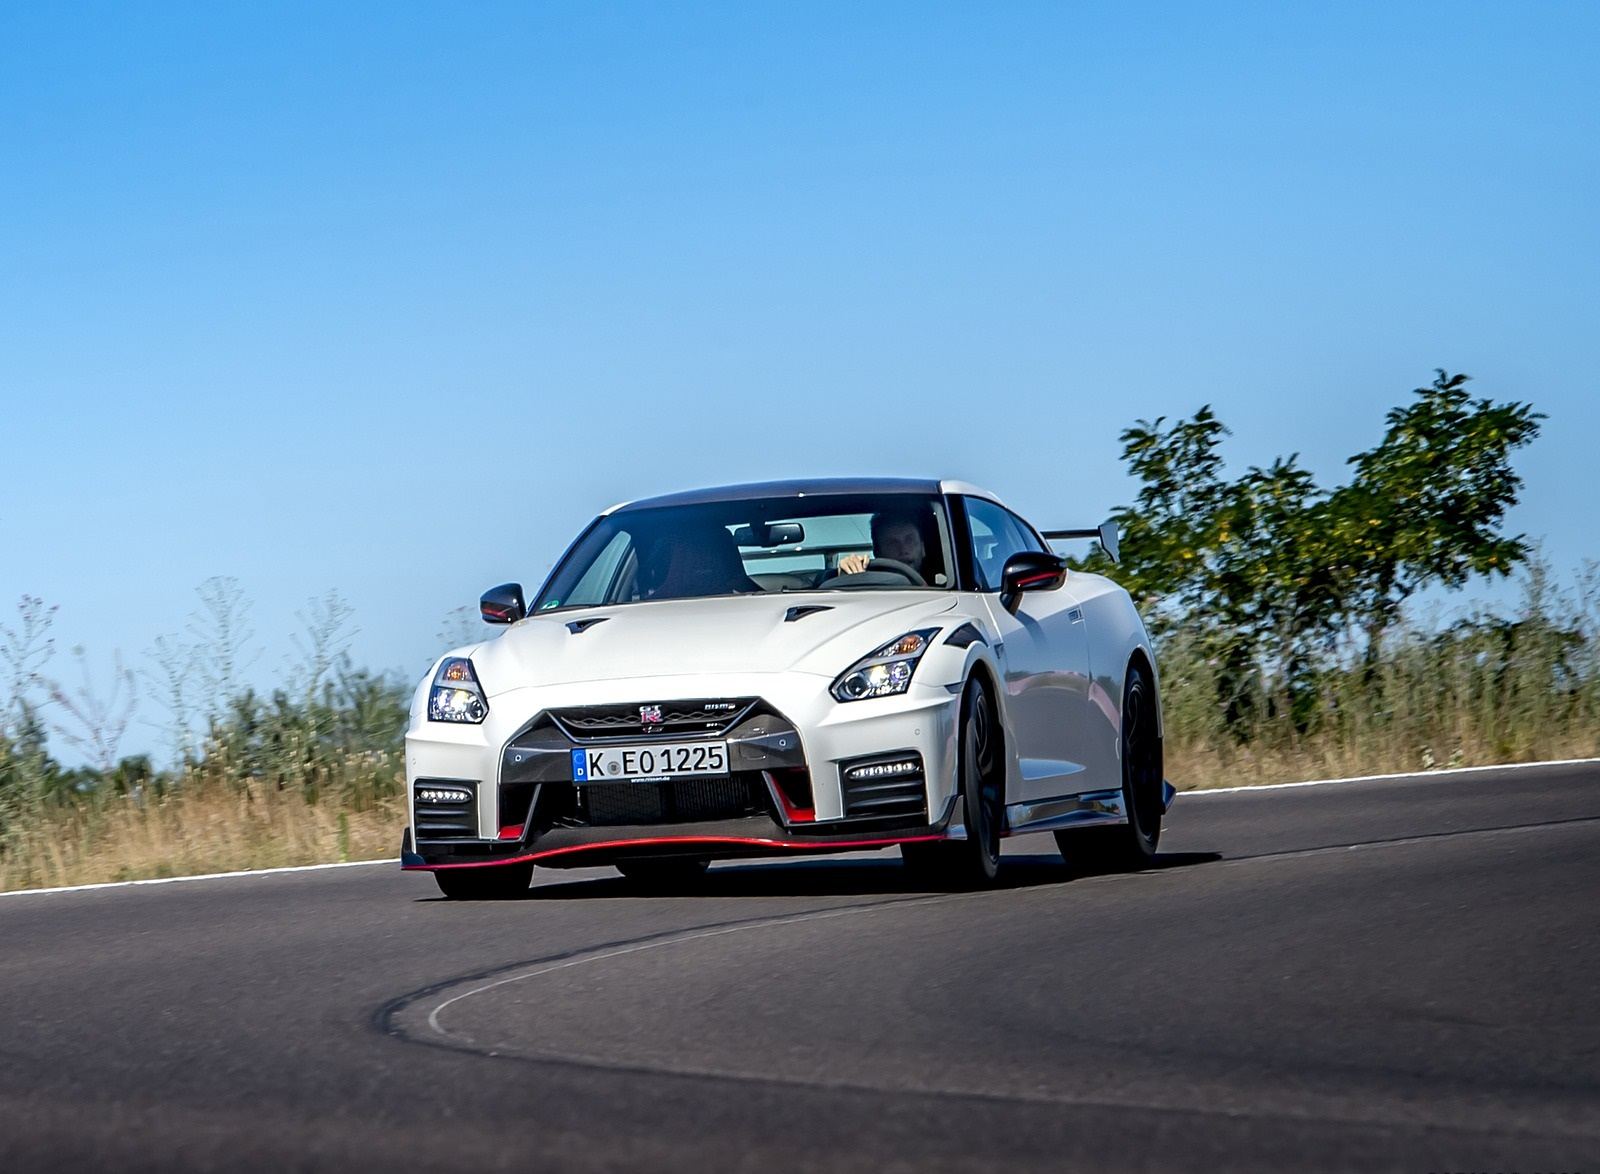 2020 Nissan GT-R NISMO Front Wallpapers #6 of 90